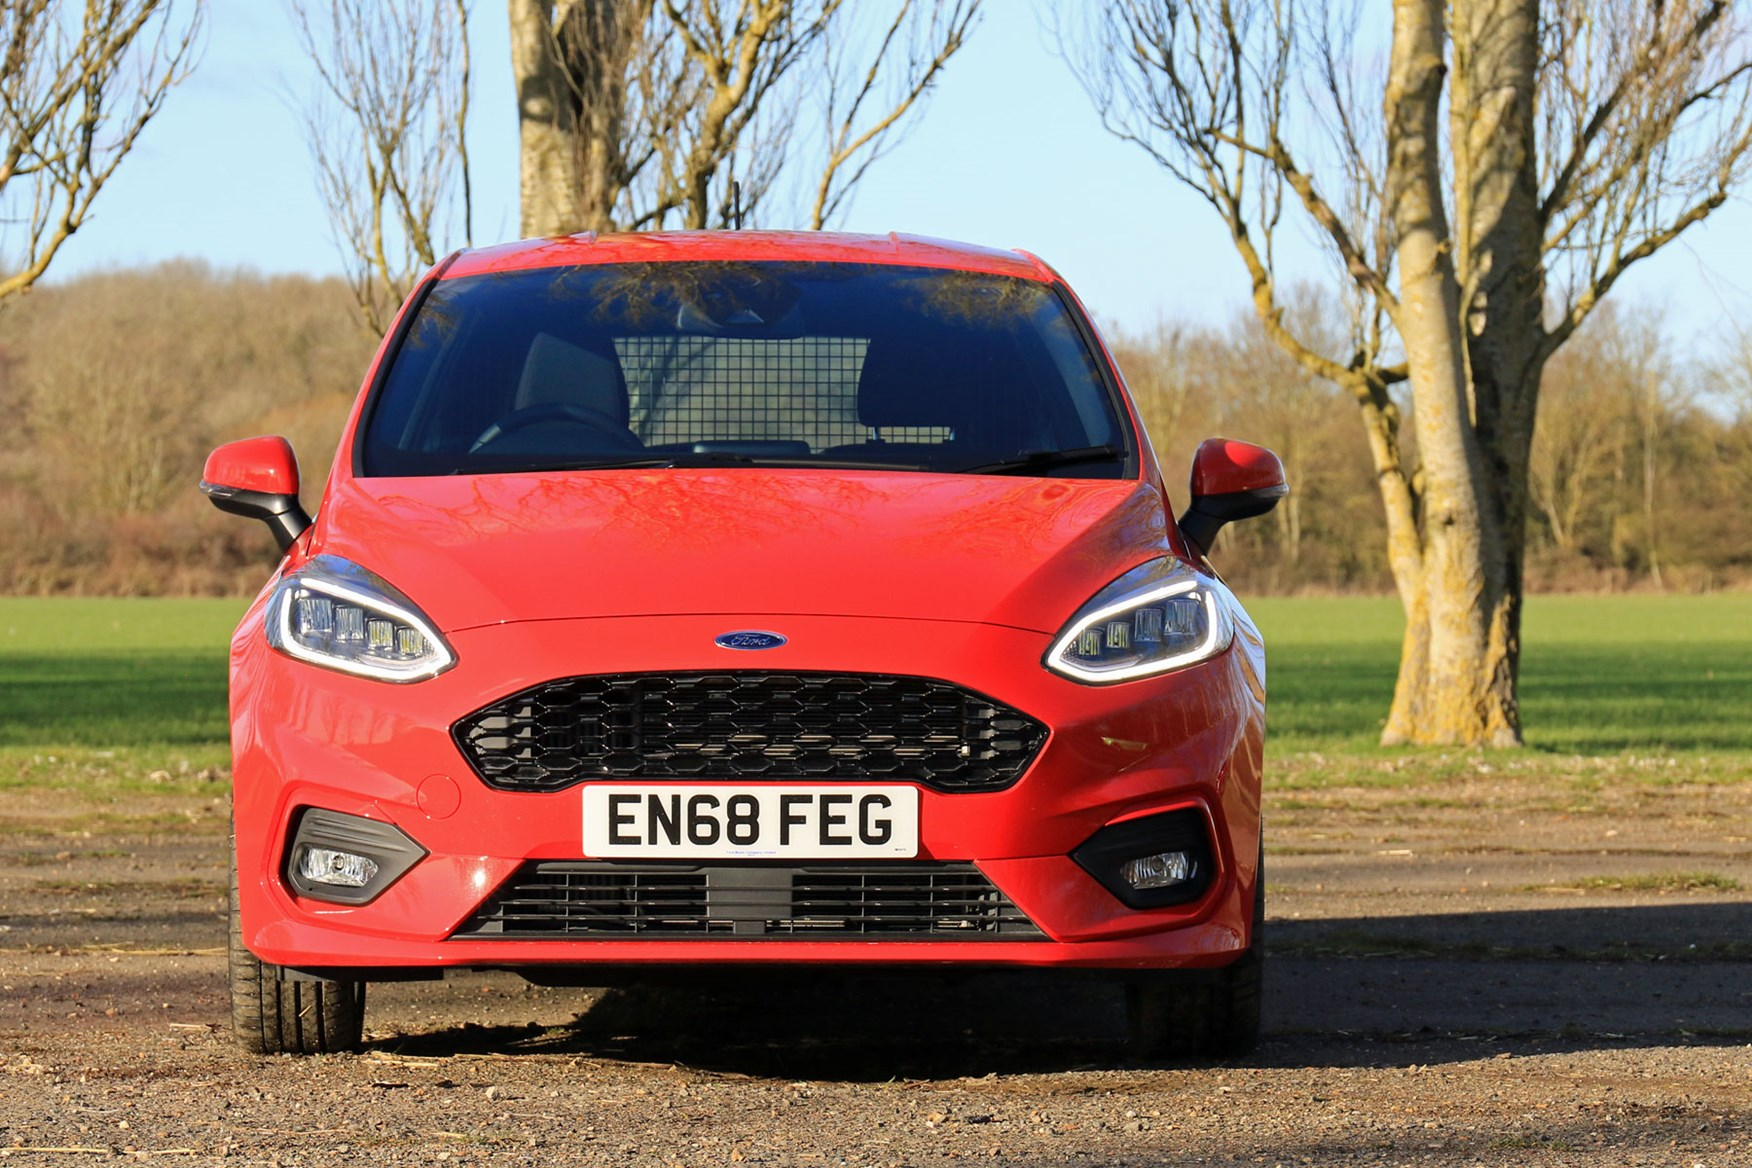 Ford Fiesta Sport Van review - front view, head-on, red